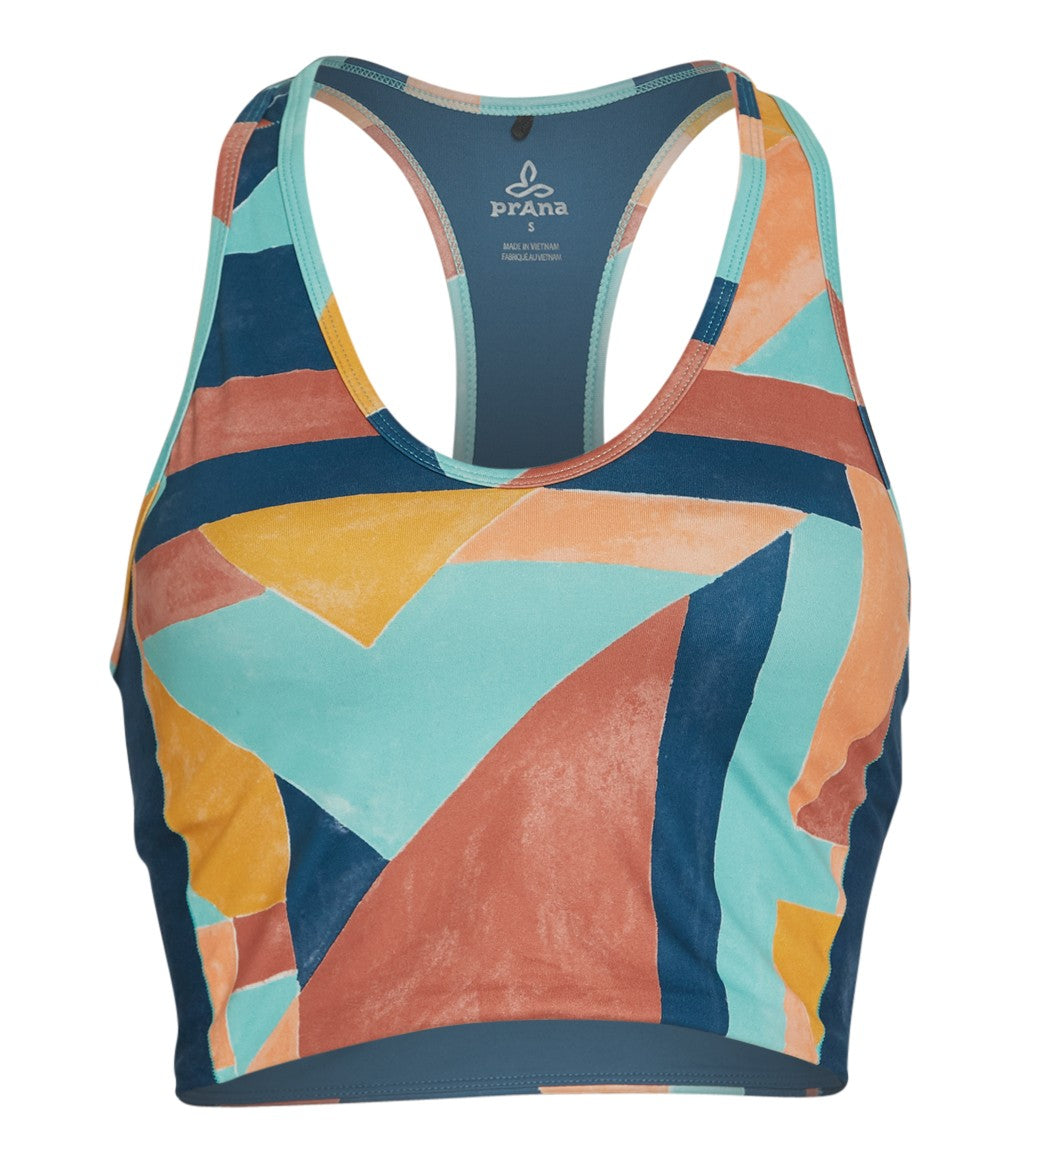 Prana Licidia Yoga Bra Top At Yogaoutlet Com Free Shipping